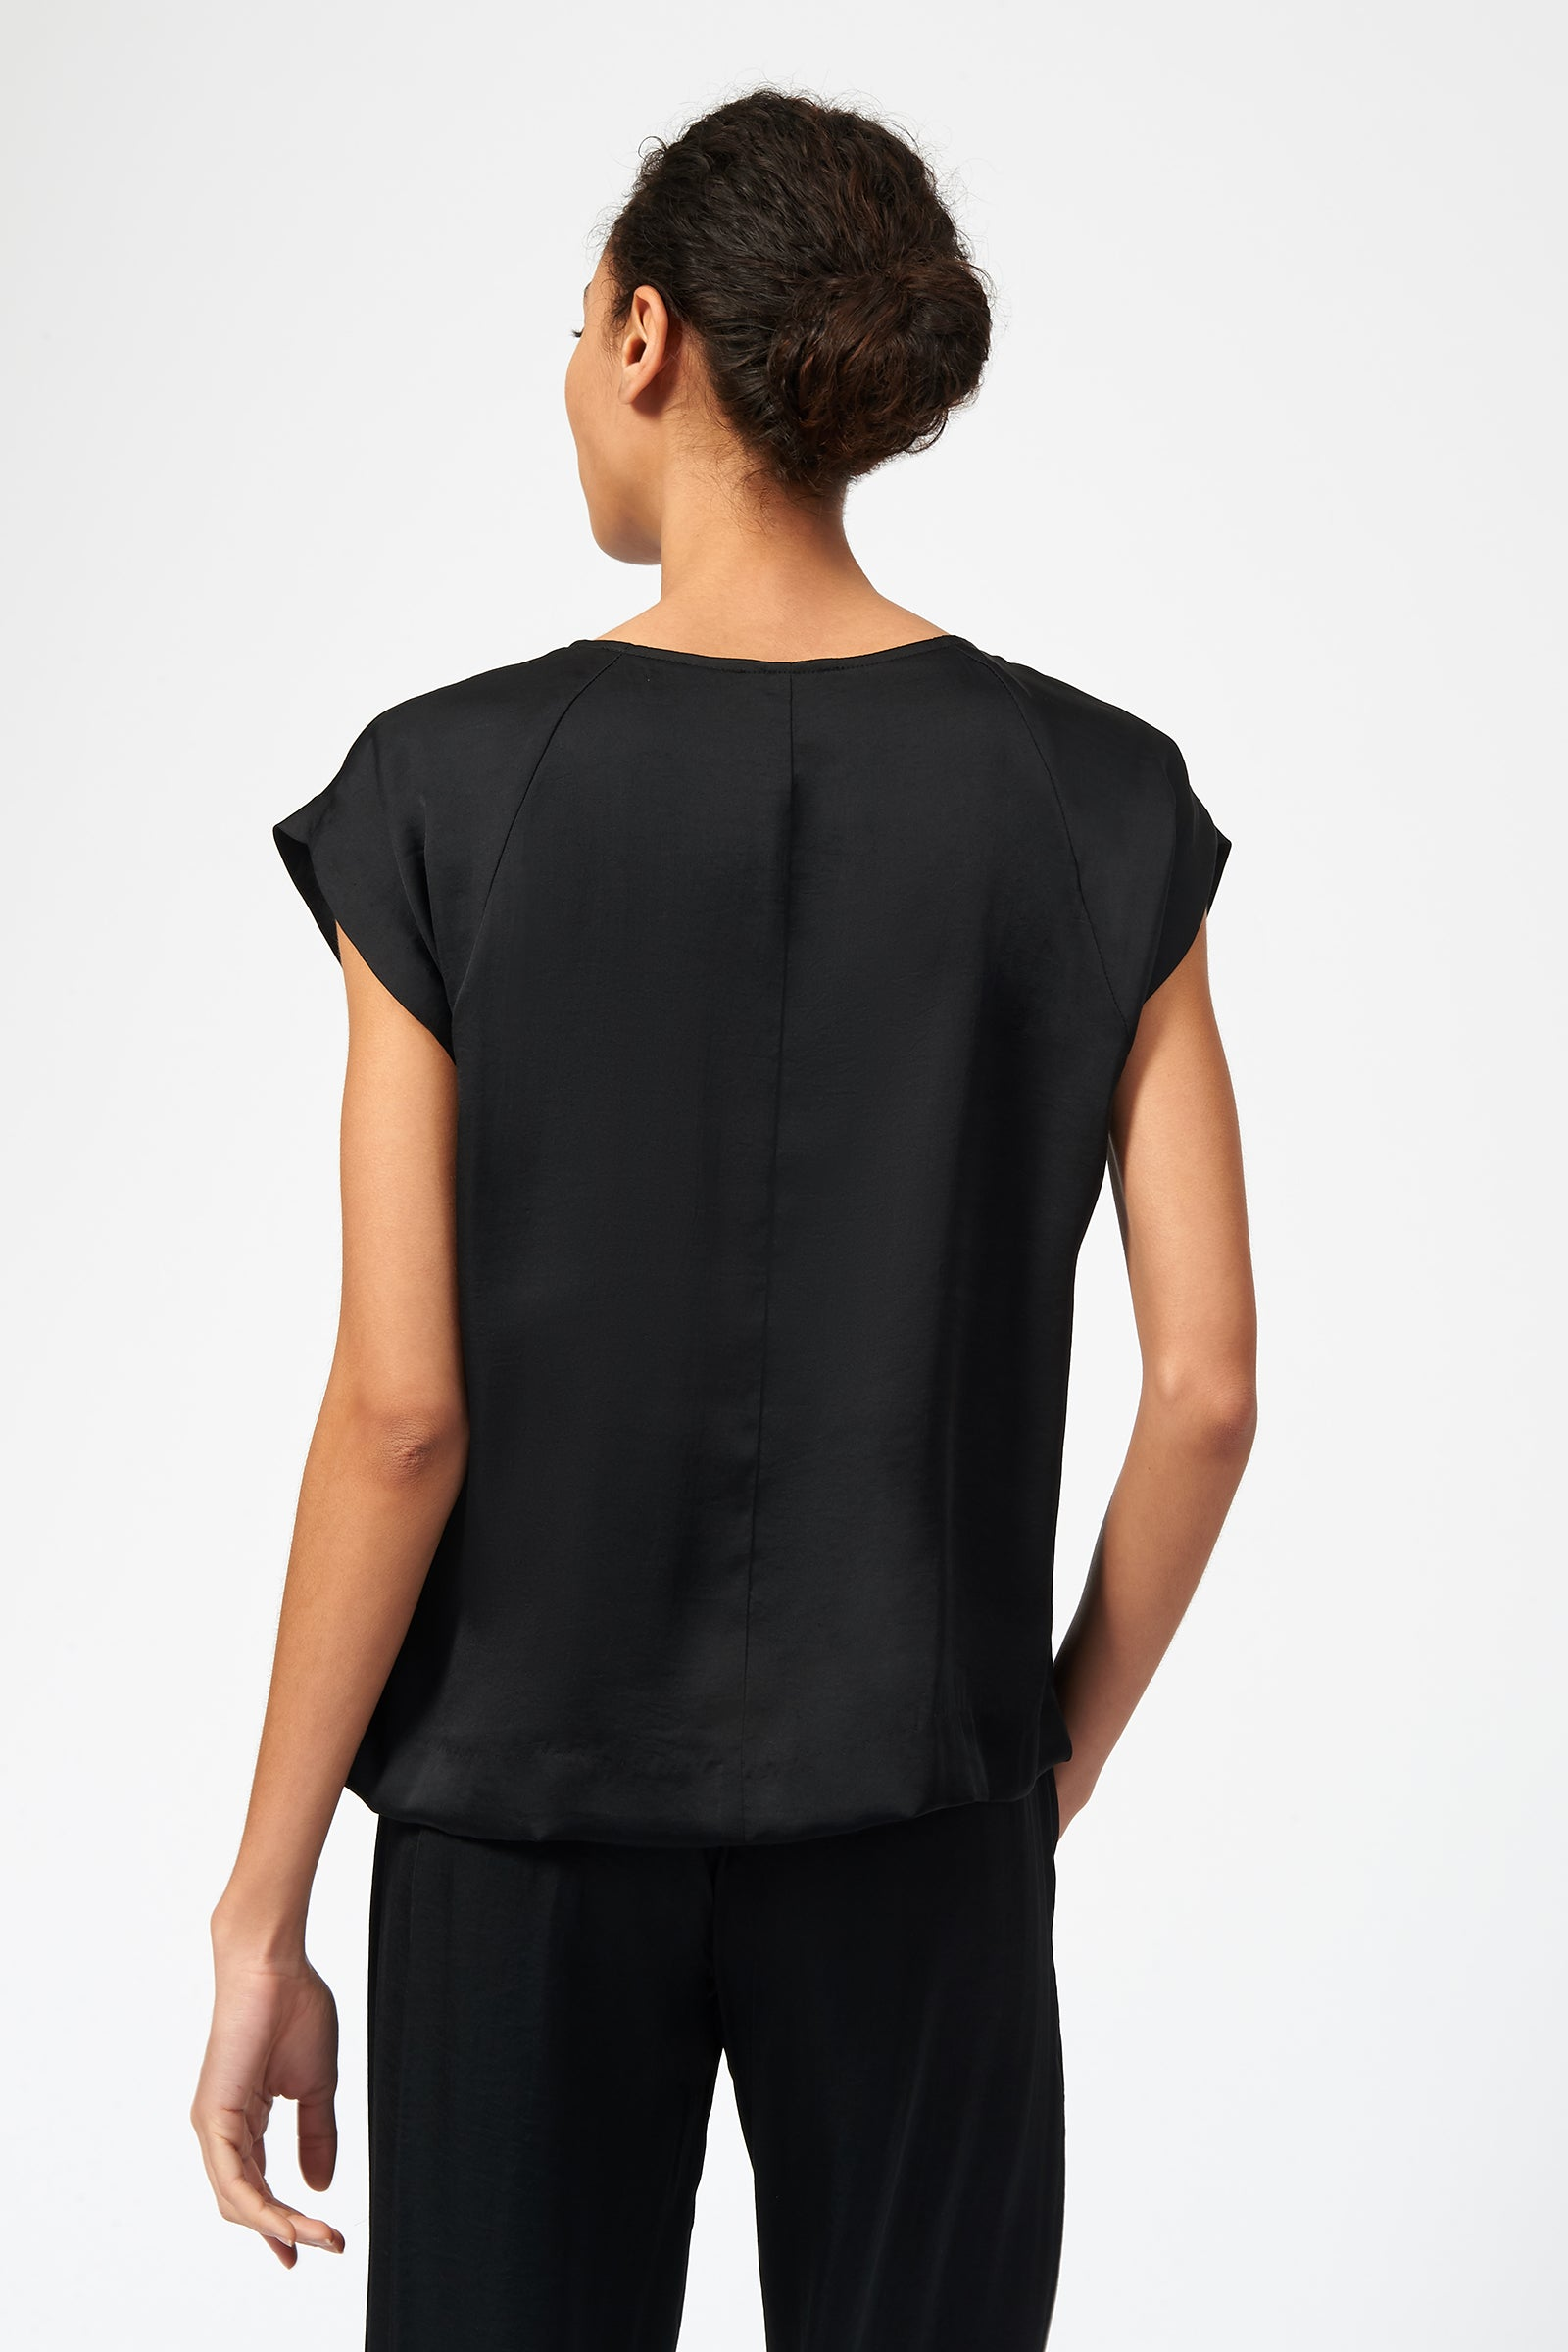 Kal Rieman Satin Raglan Tee in Black on Model Back View